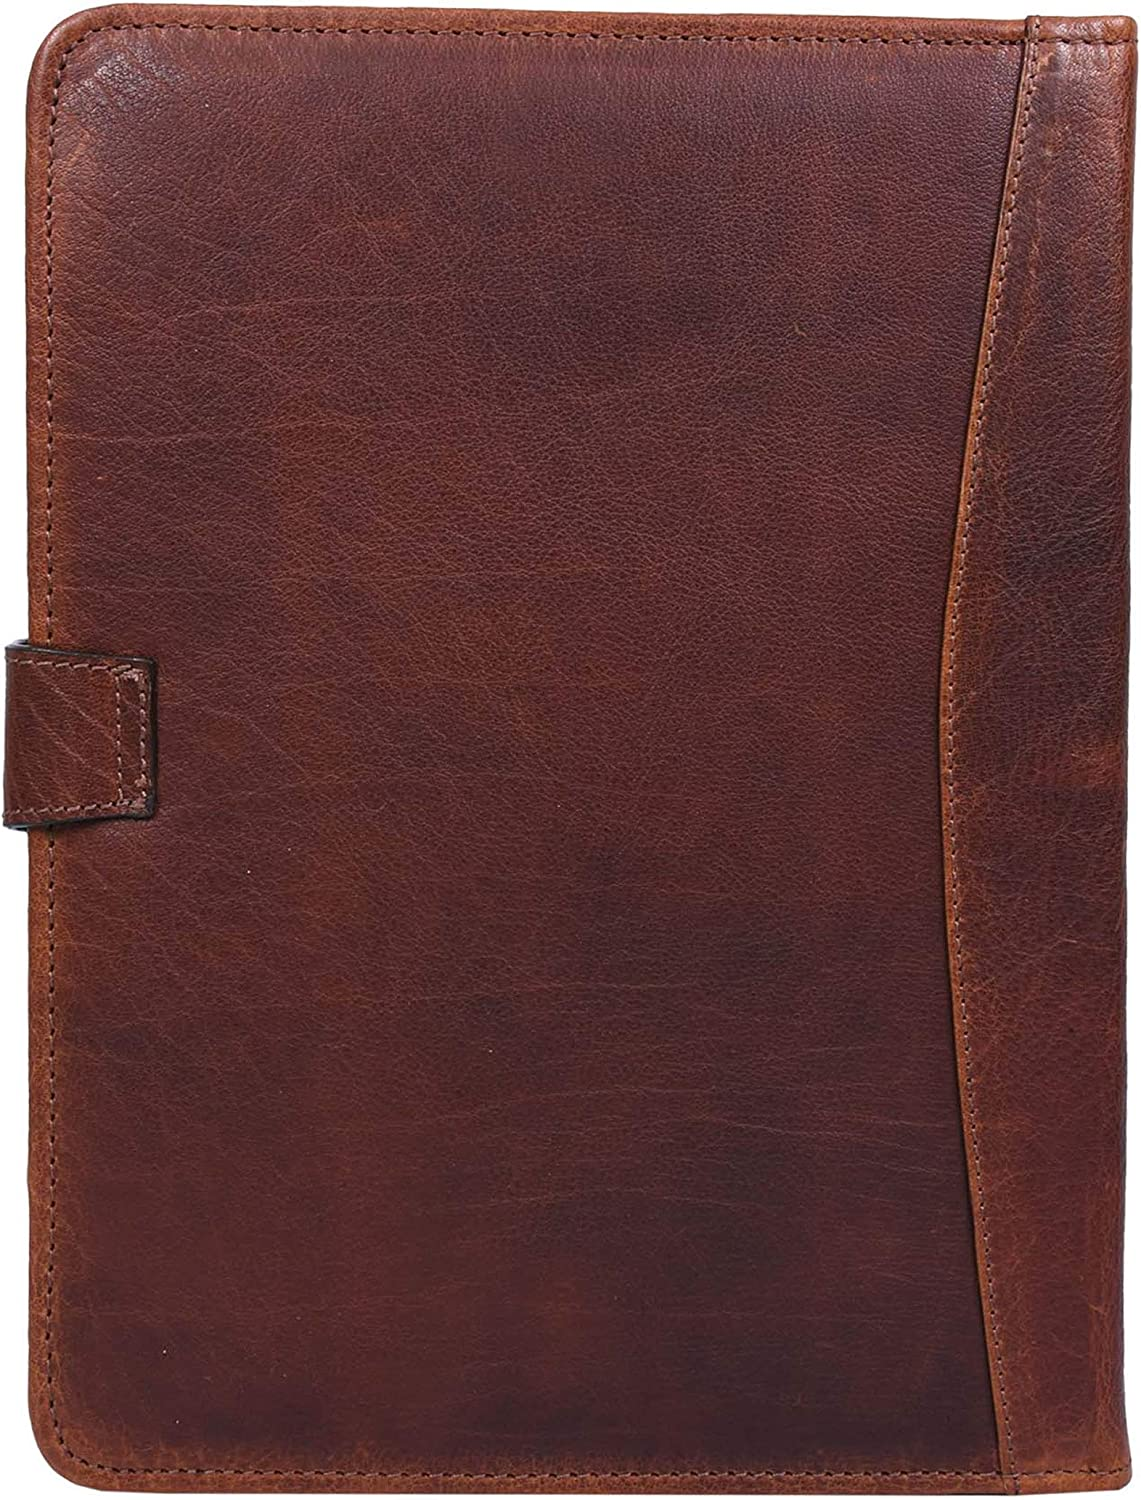 Caramel Easy to Carry Organizer with Writing Pad Holder Zippered Genuine Leather Business Portfolio Business Card and Pen Slots IPAD//Tablet Holder and Flip-Closure Phone Pocket